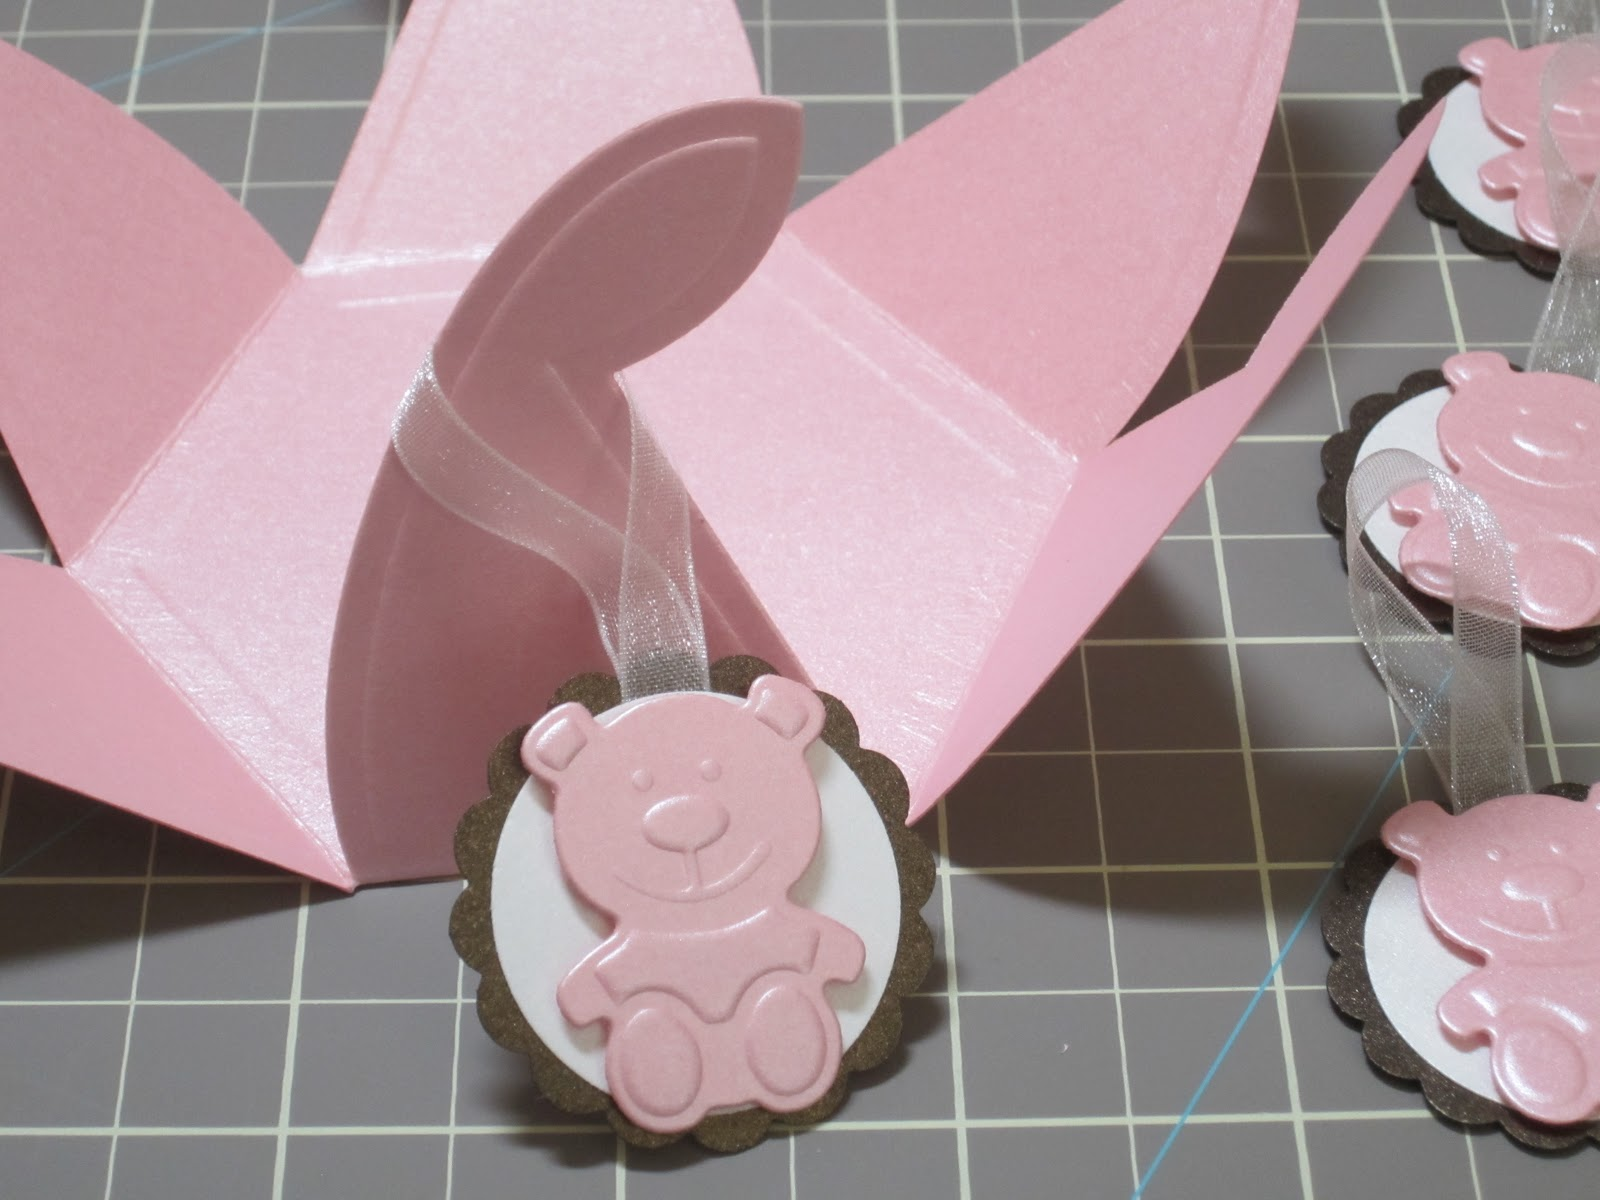 Designs by Marisa: Baby Shower Party Favor Boxes